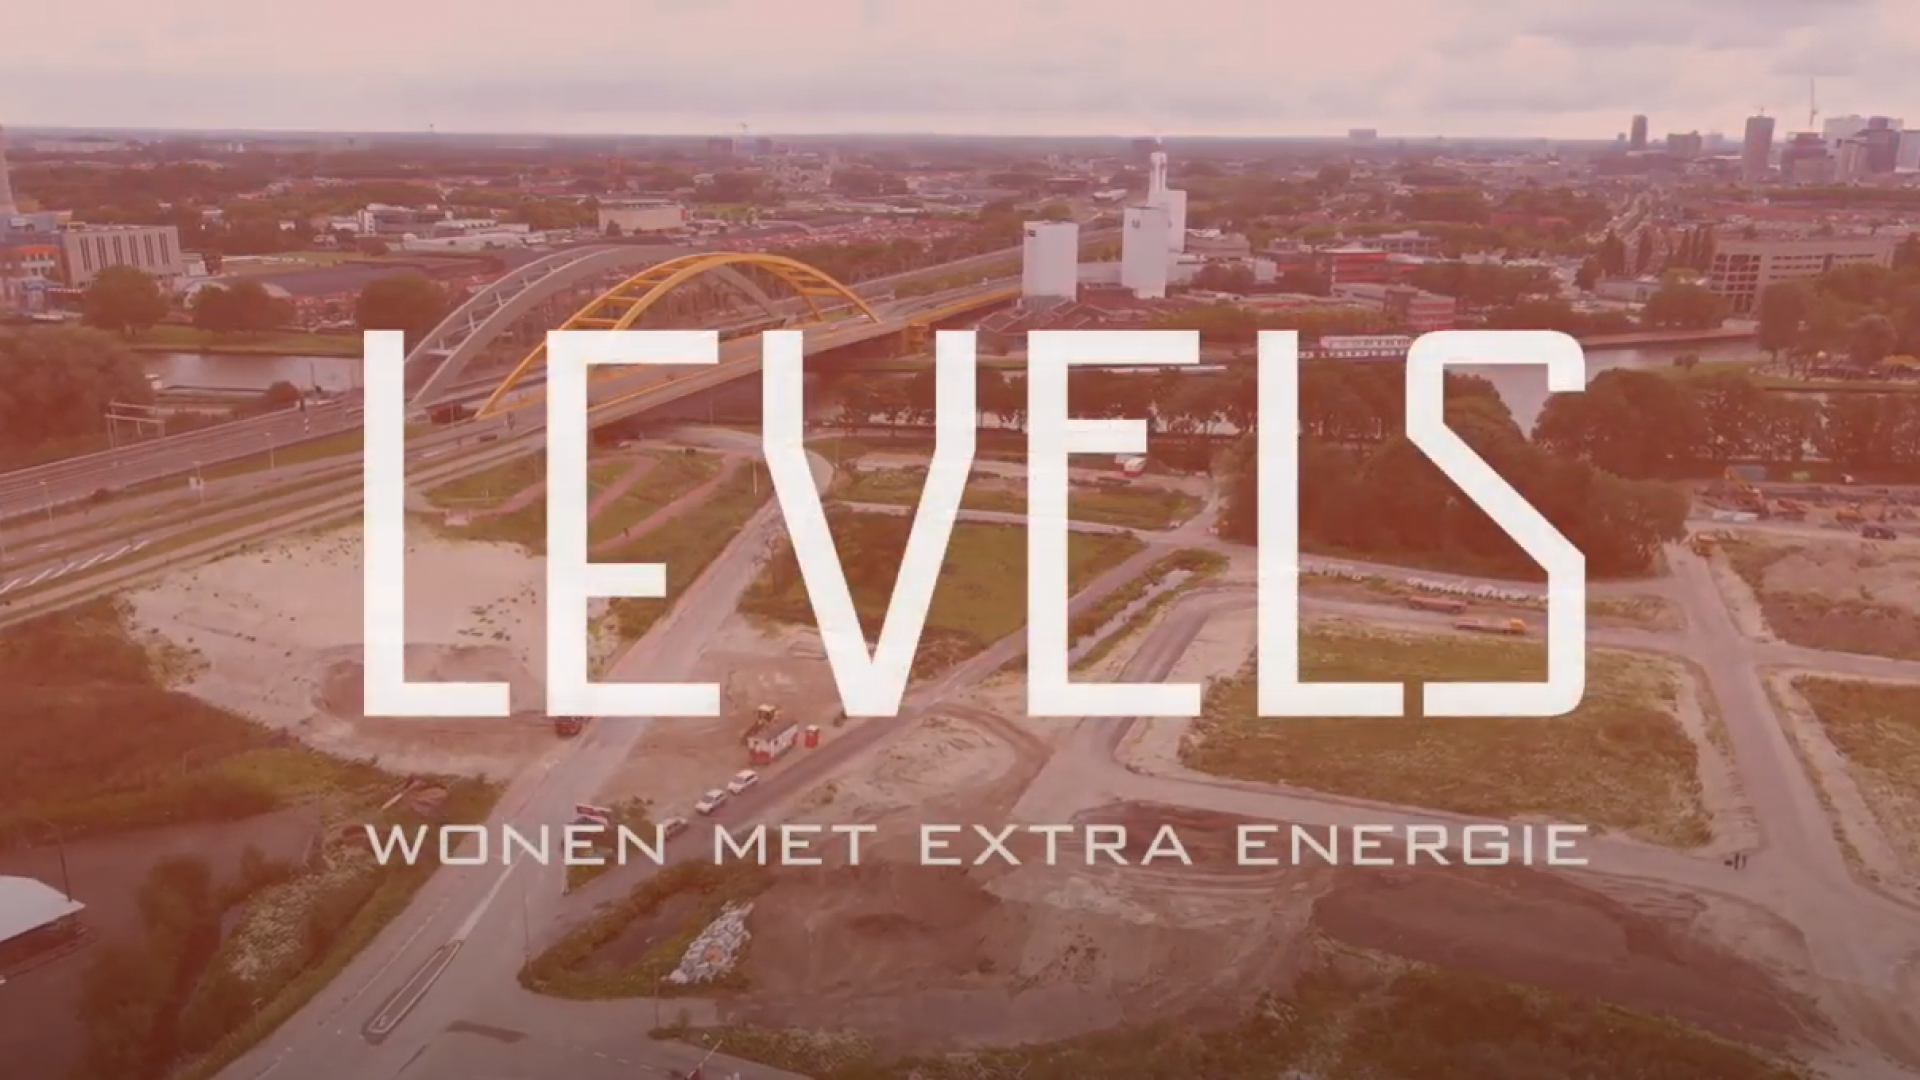 Levels in Beeld